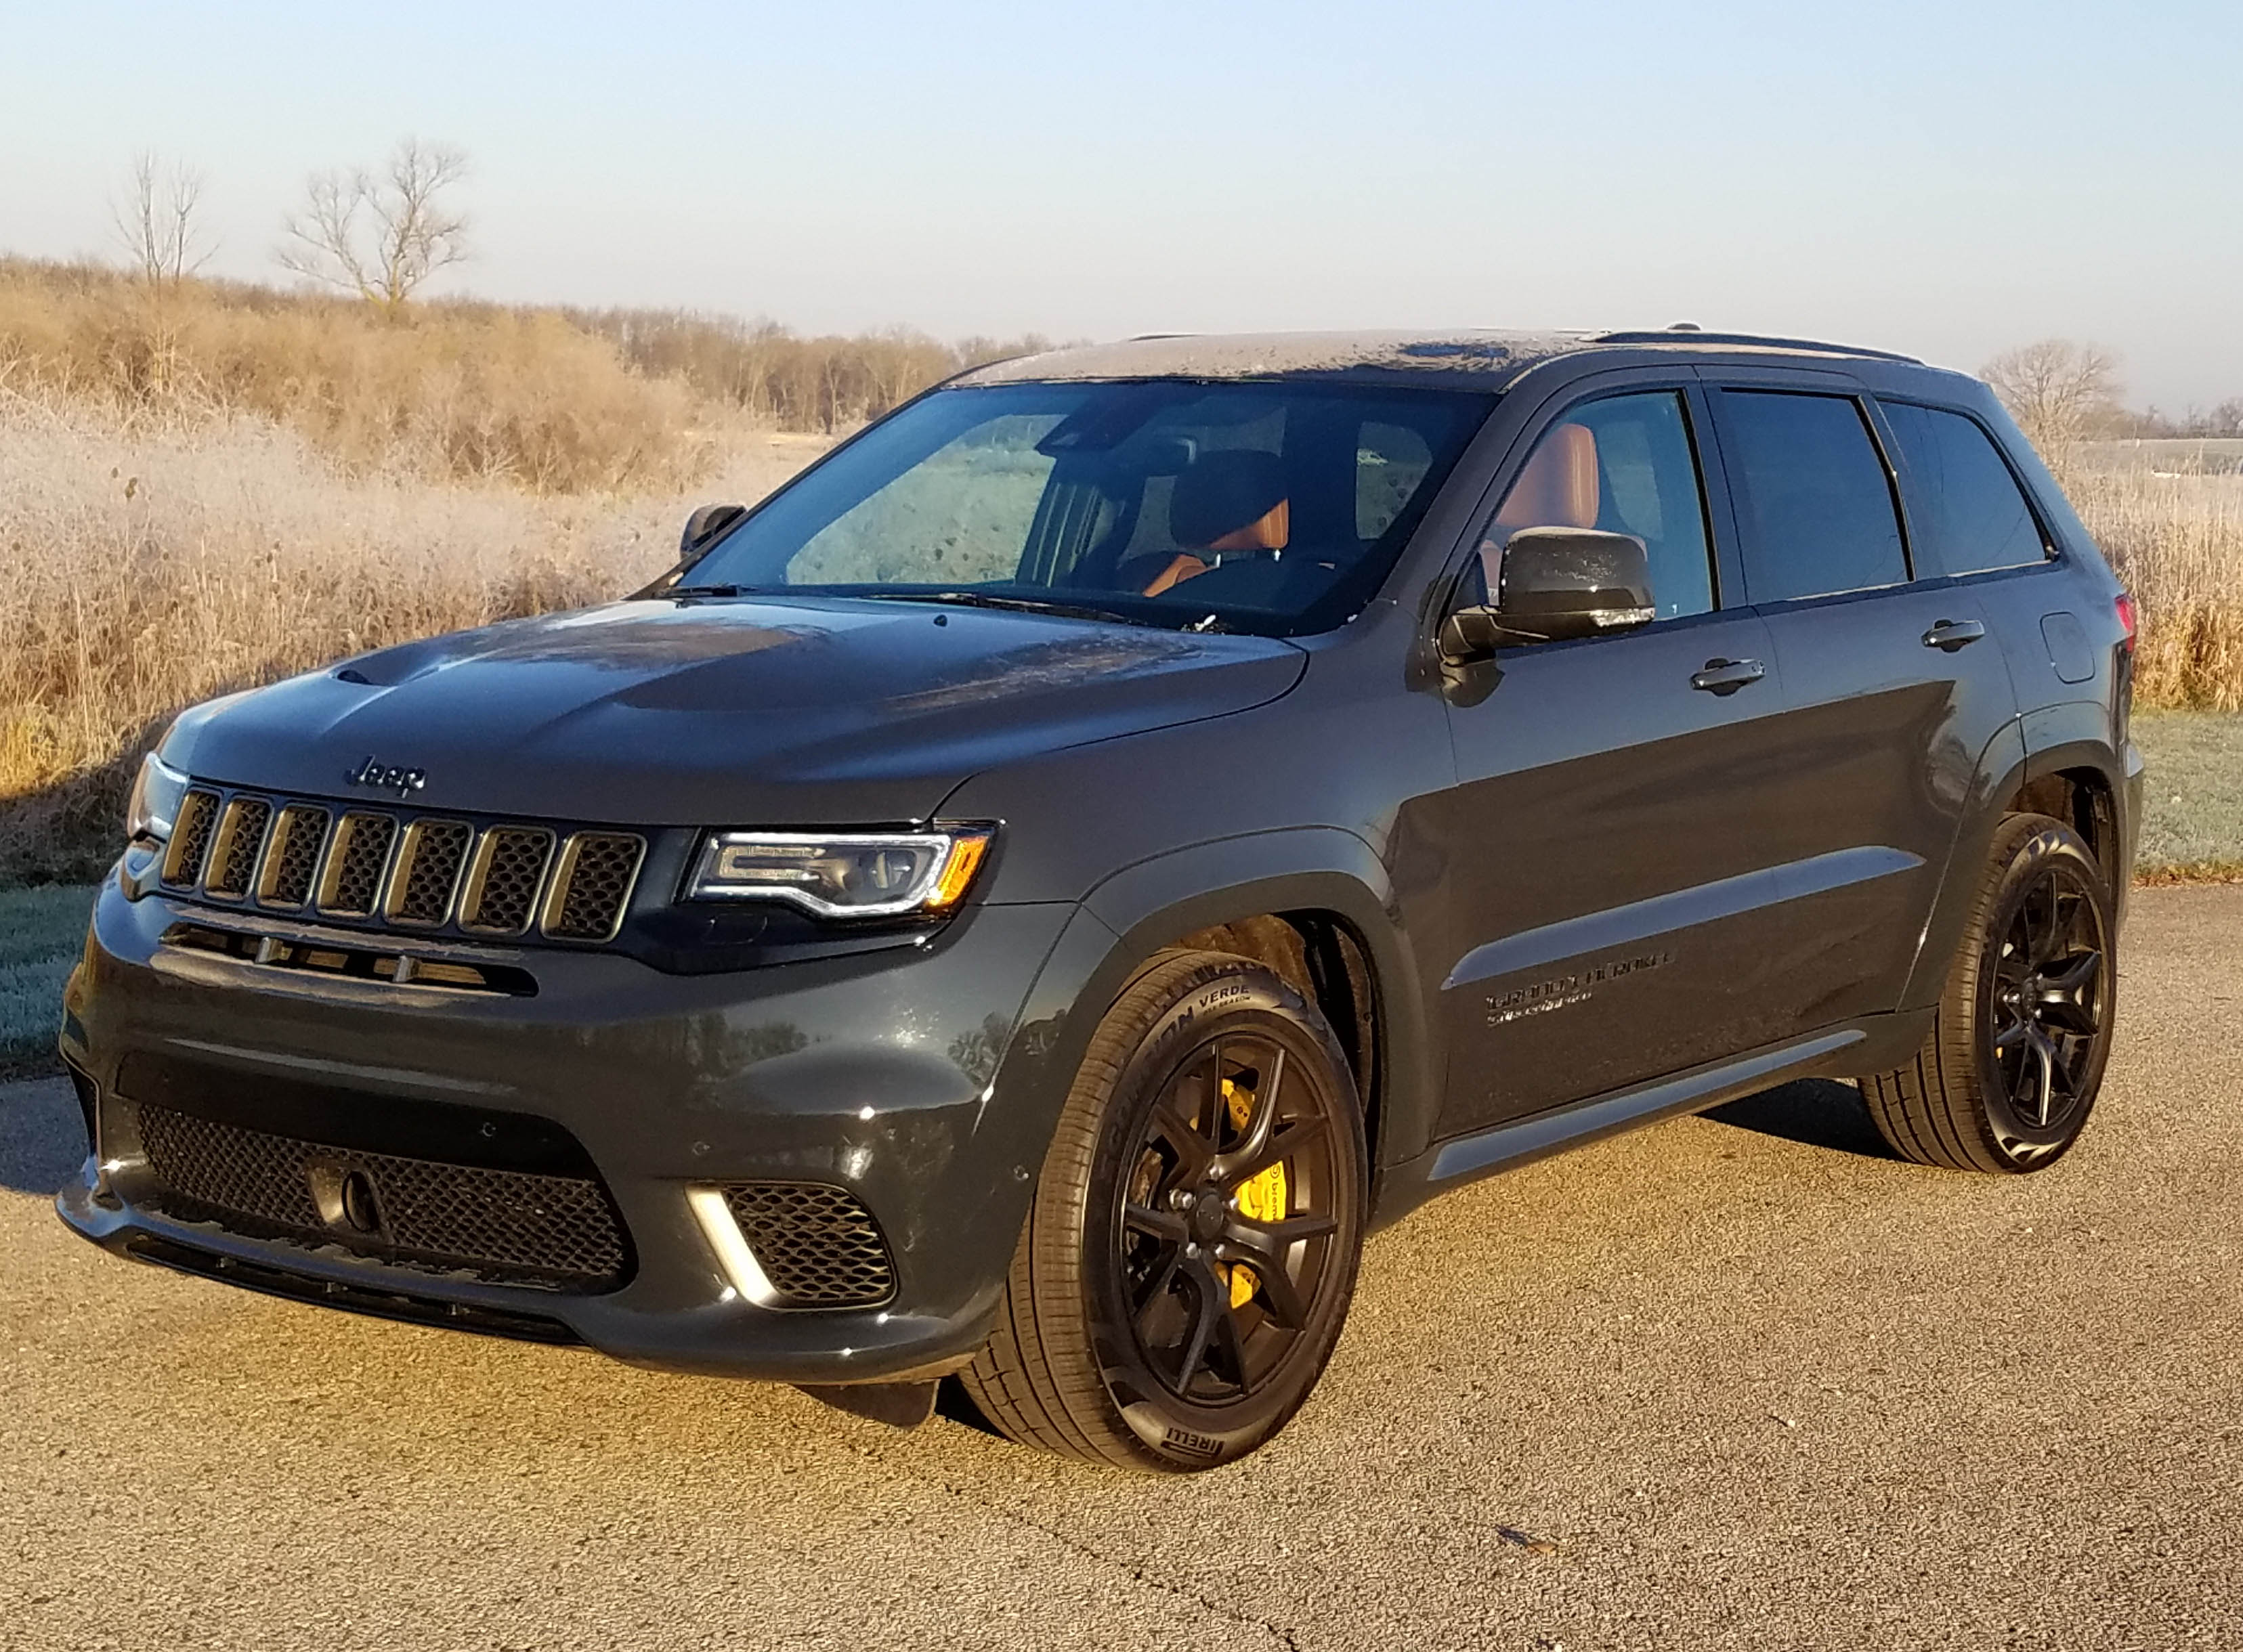 2018 jeep grand cherokee trackhawk savage on wheels. Black Bedroom Furniture Sets. Home Design Ideas